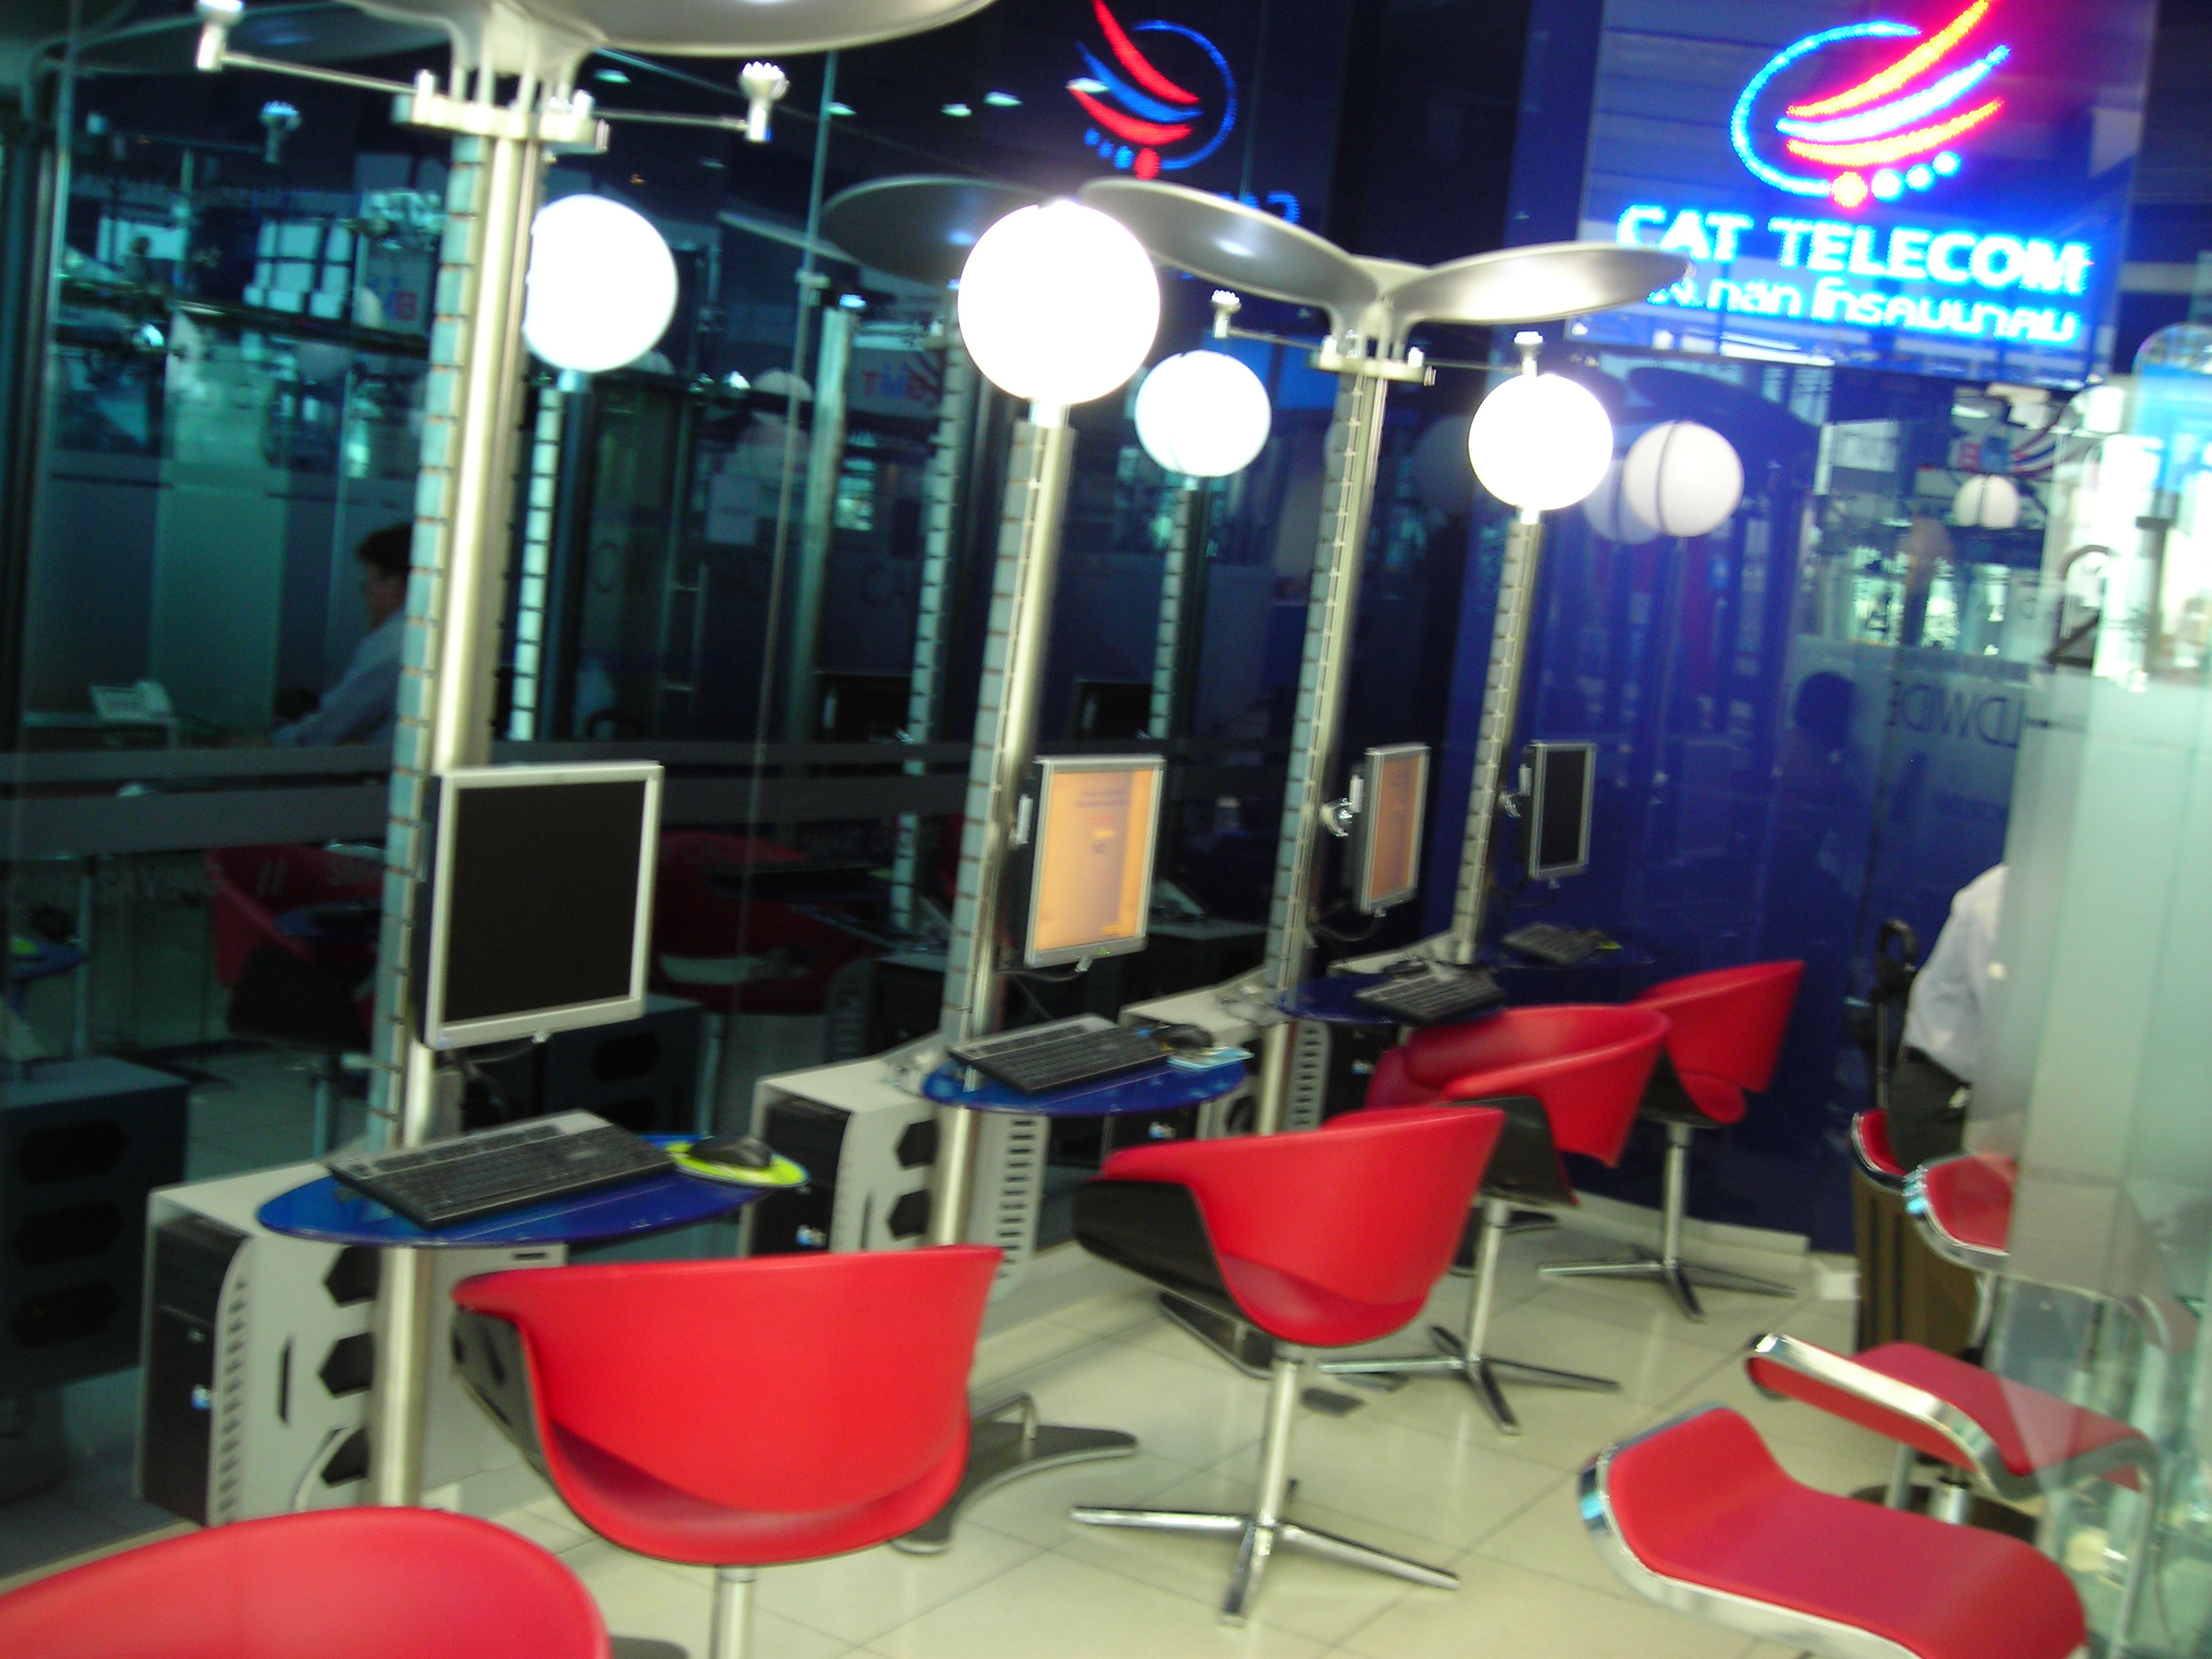 internet cafes Browse 8 internet cafes for sale on bizquest buy or sell your internet cafe with bizquest, the original business for sale website.